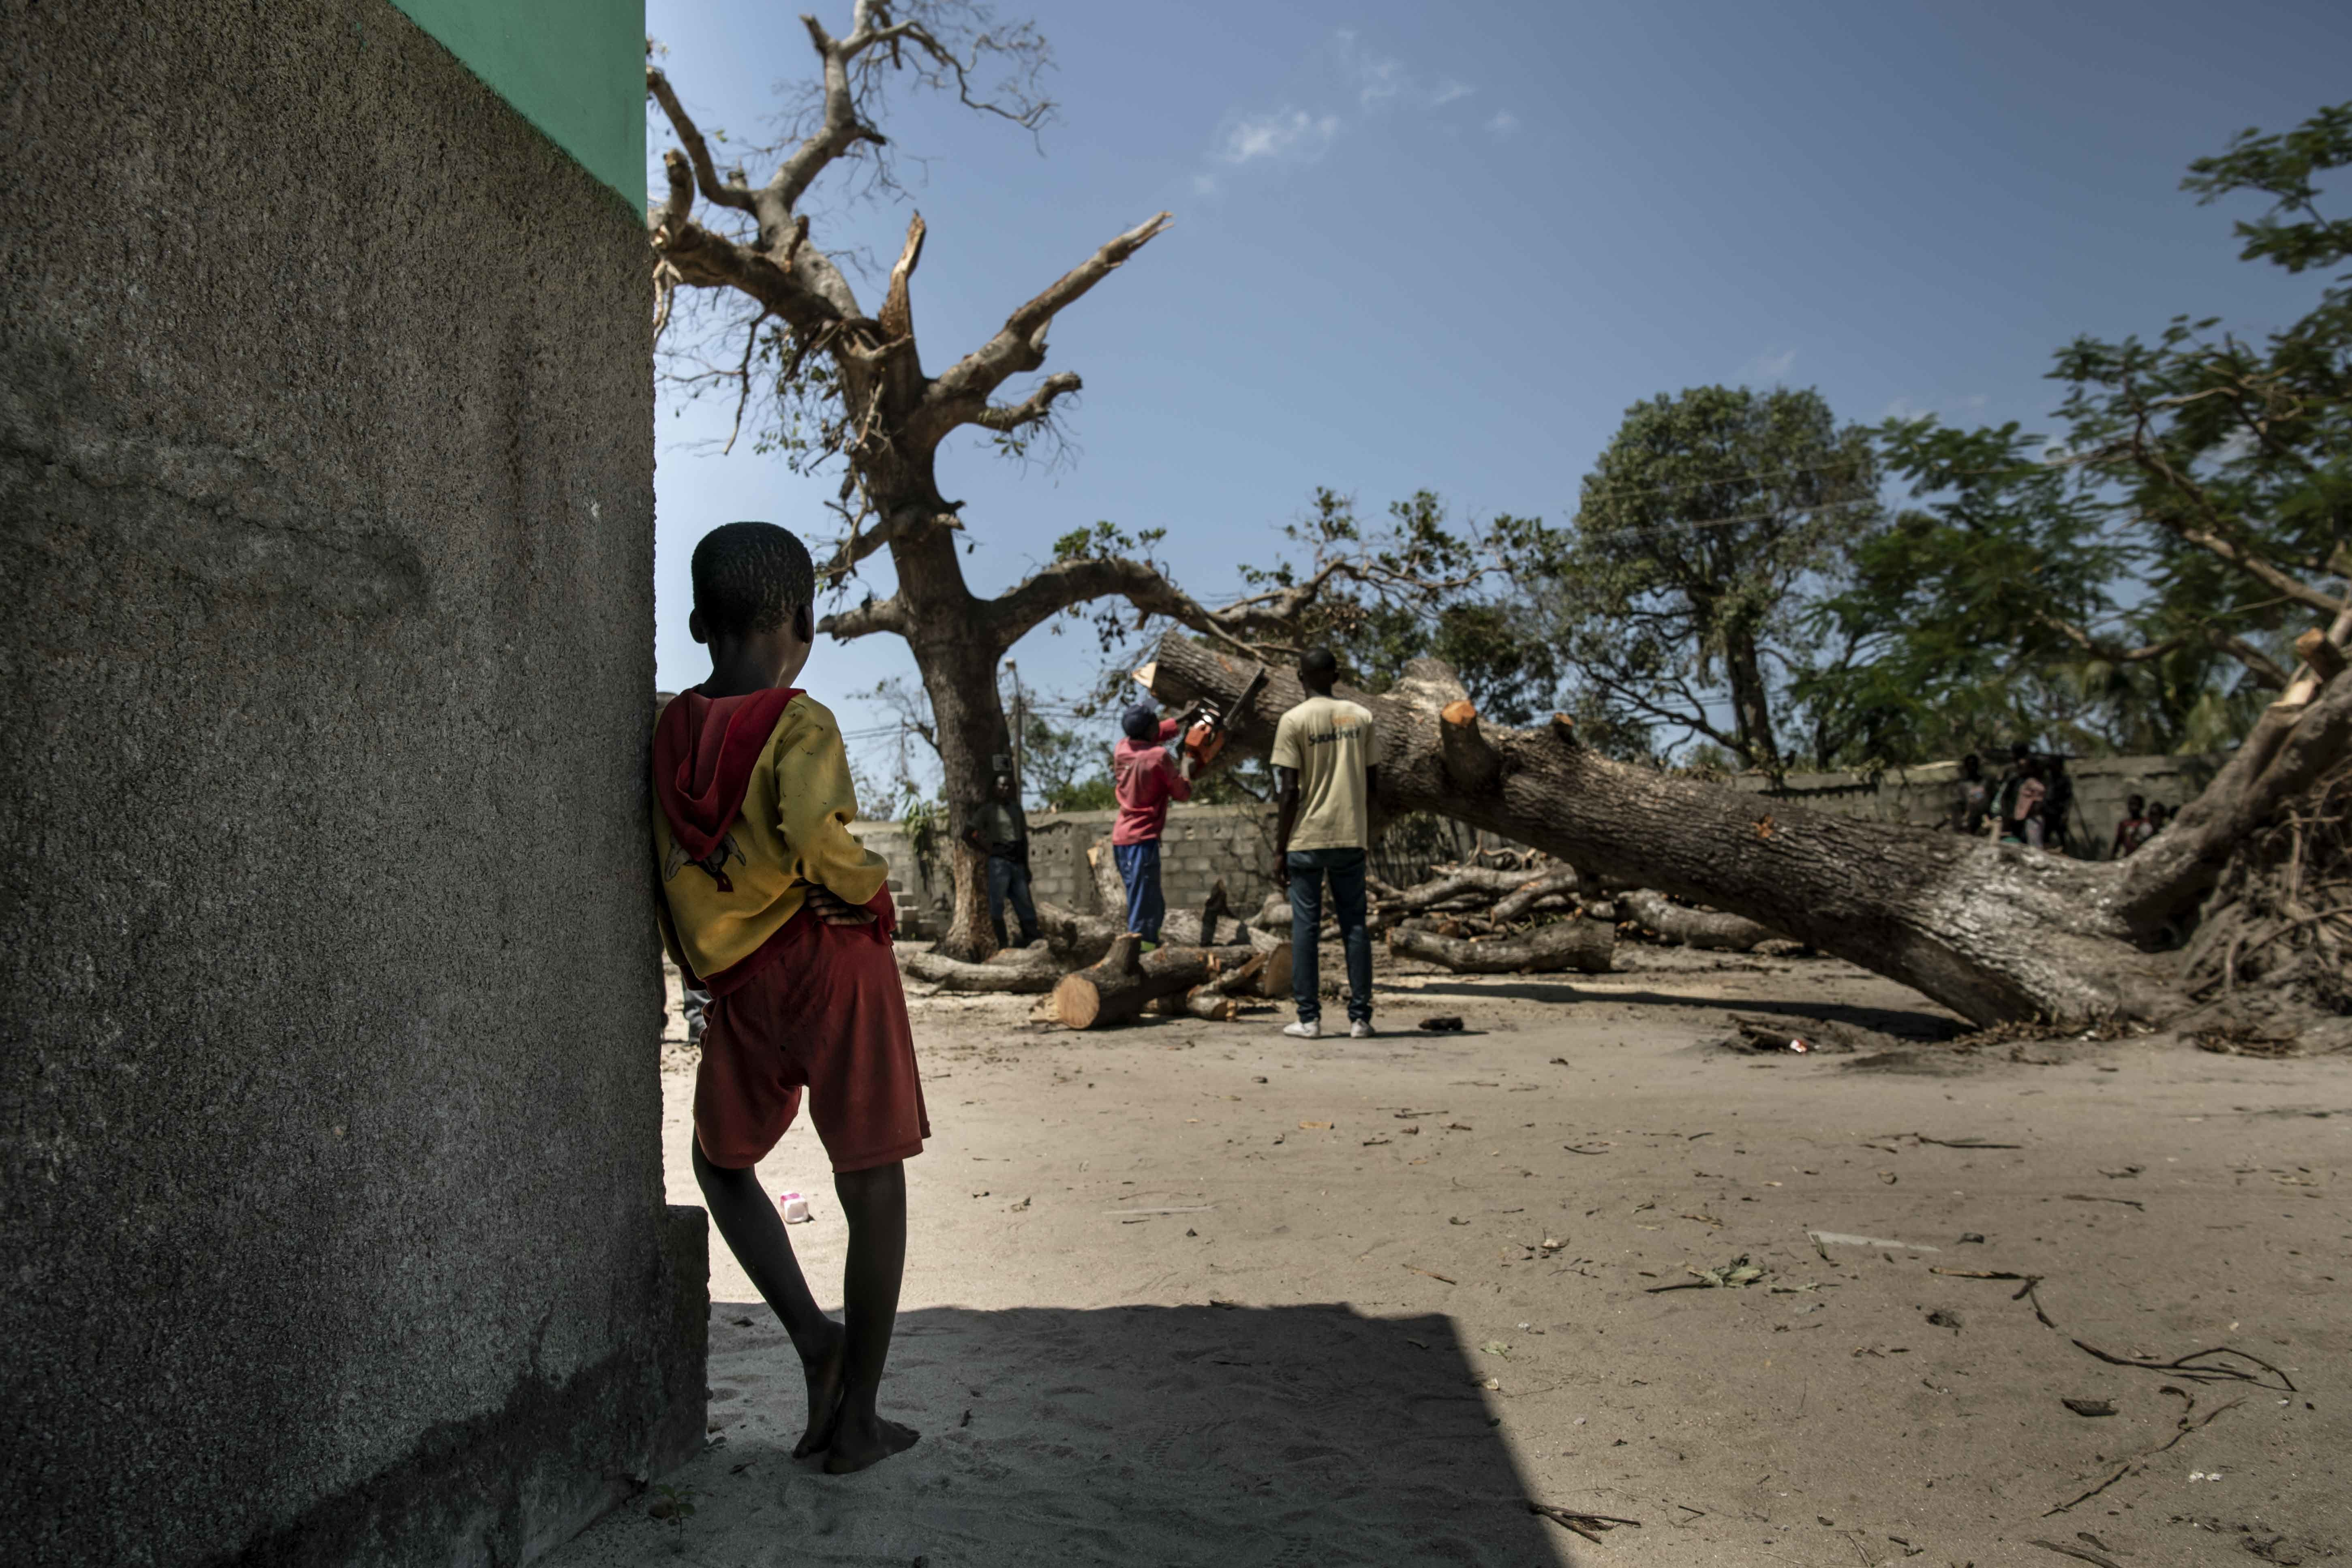 A boy watches a tree being cleared away in the aftermath of Cyclone Idai.